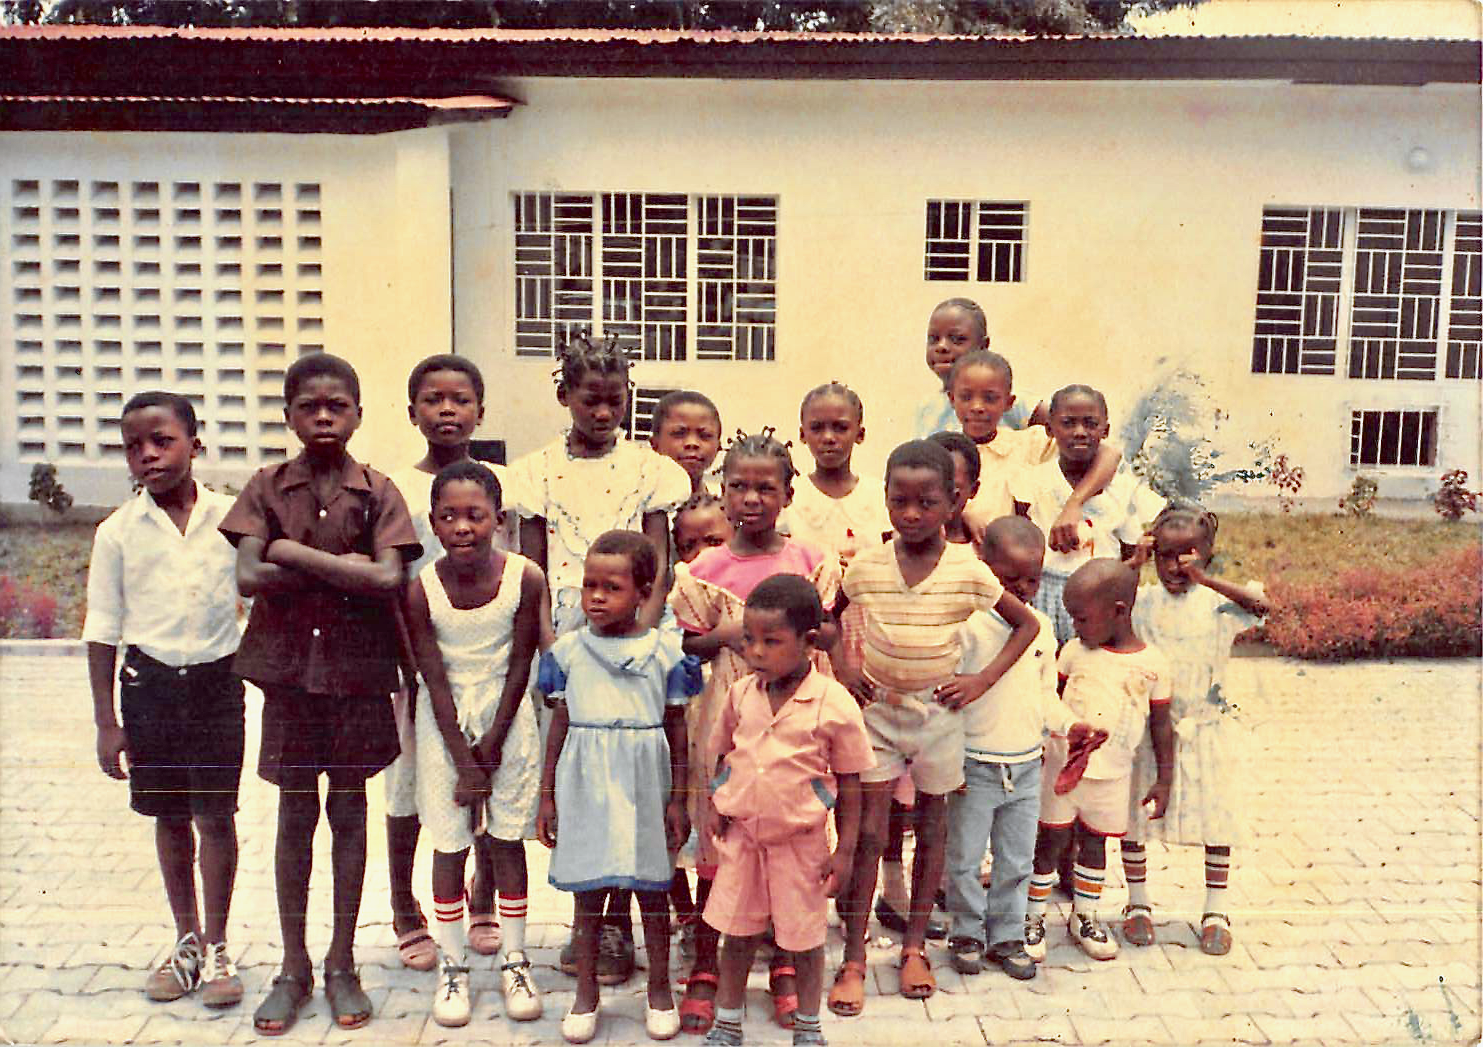 The Primary children of the Limété Branch in 1987 in Zaire (now the Democratic Republic of the Congo).